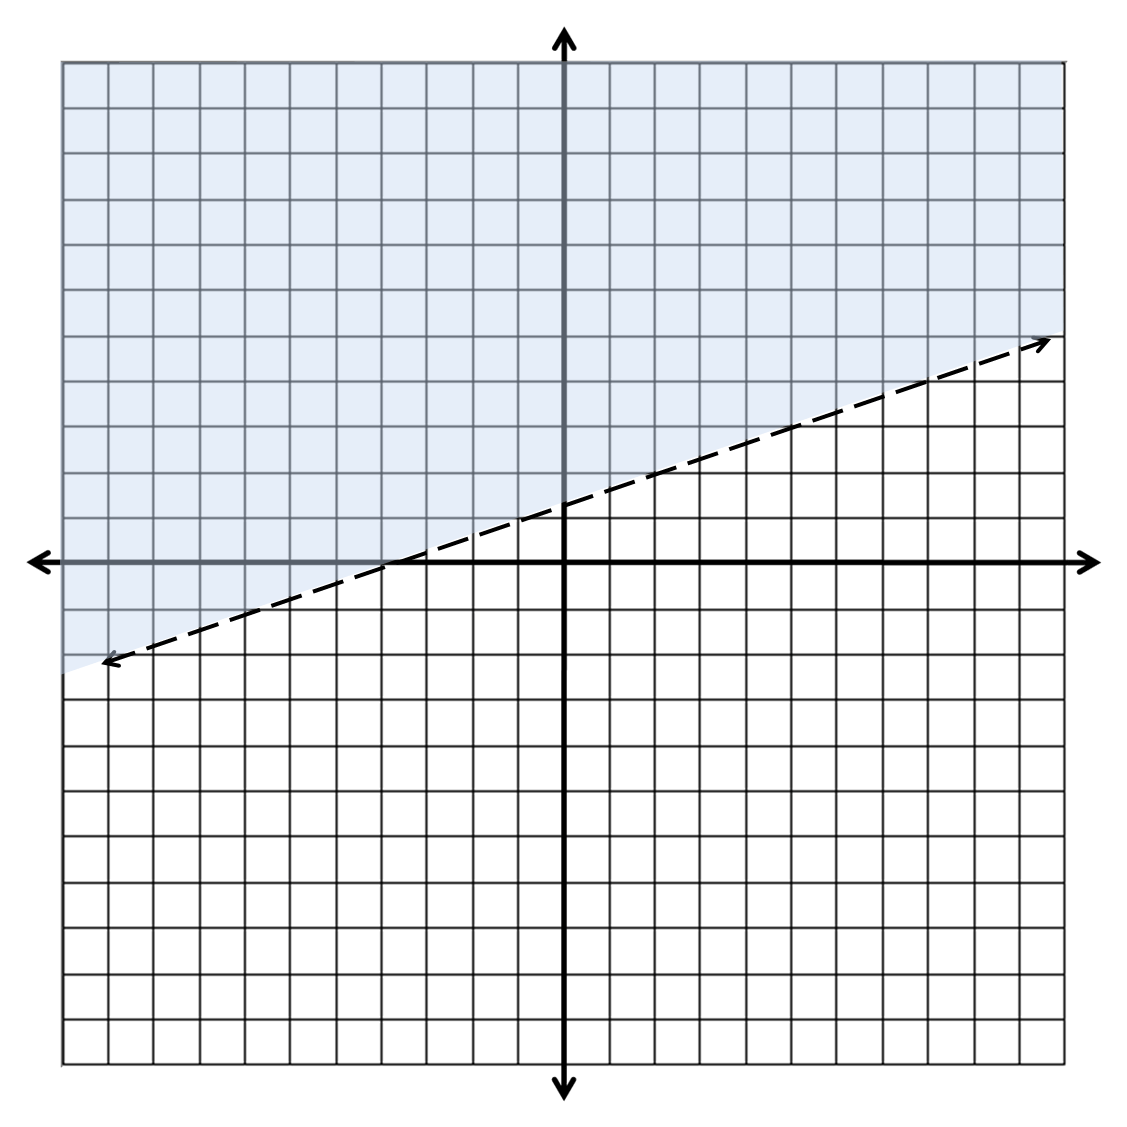 Linear Inequalities And Graphs